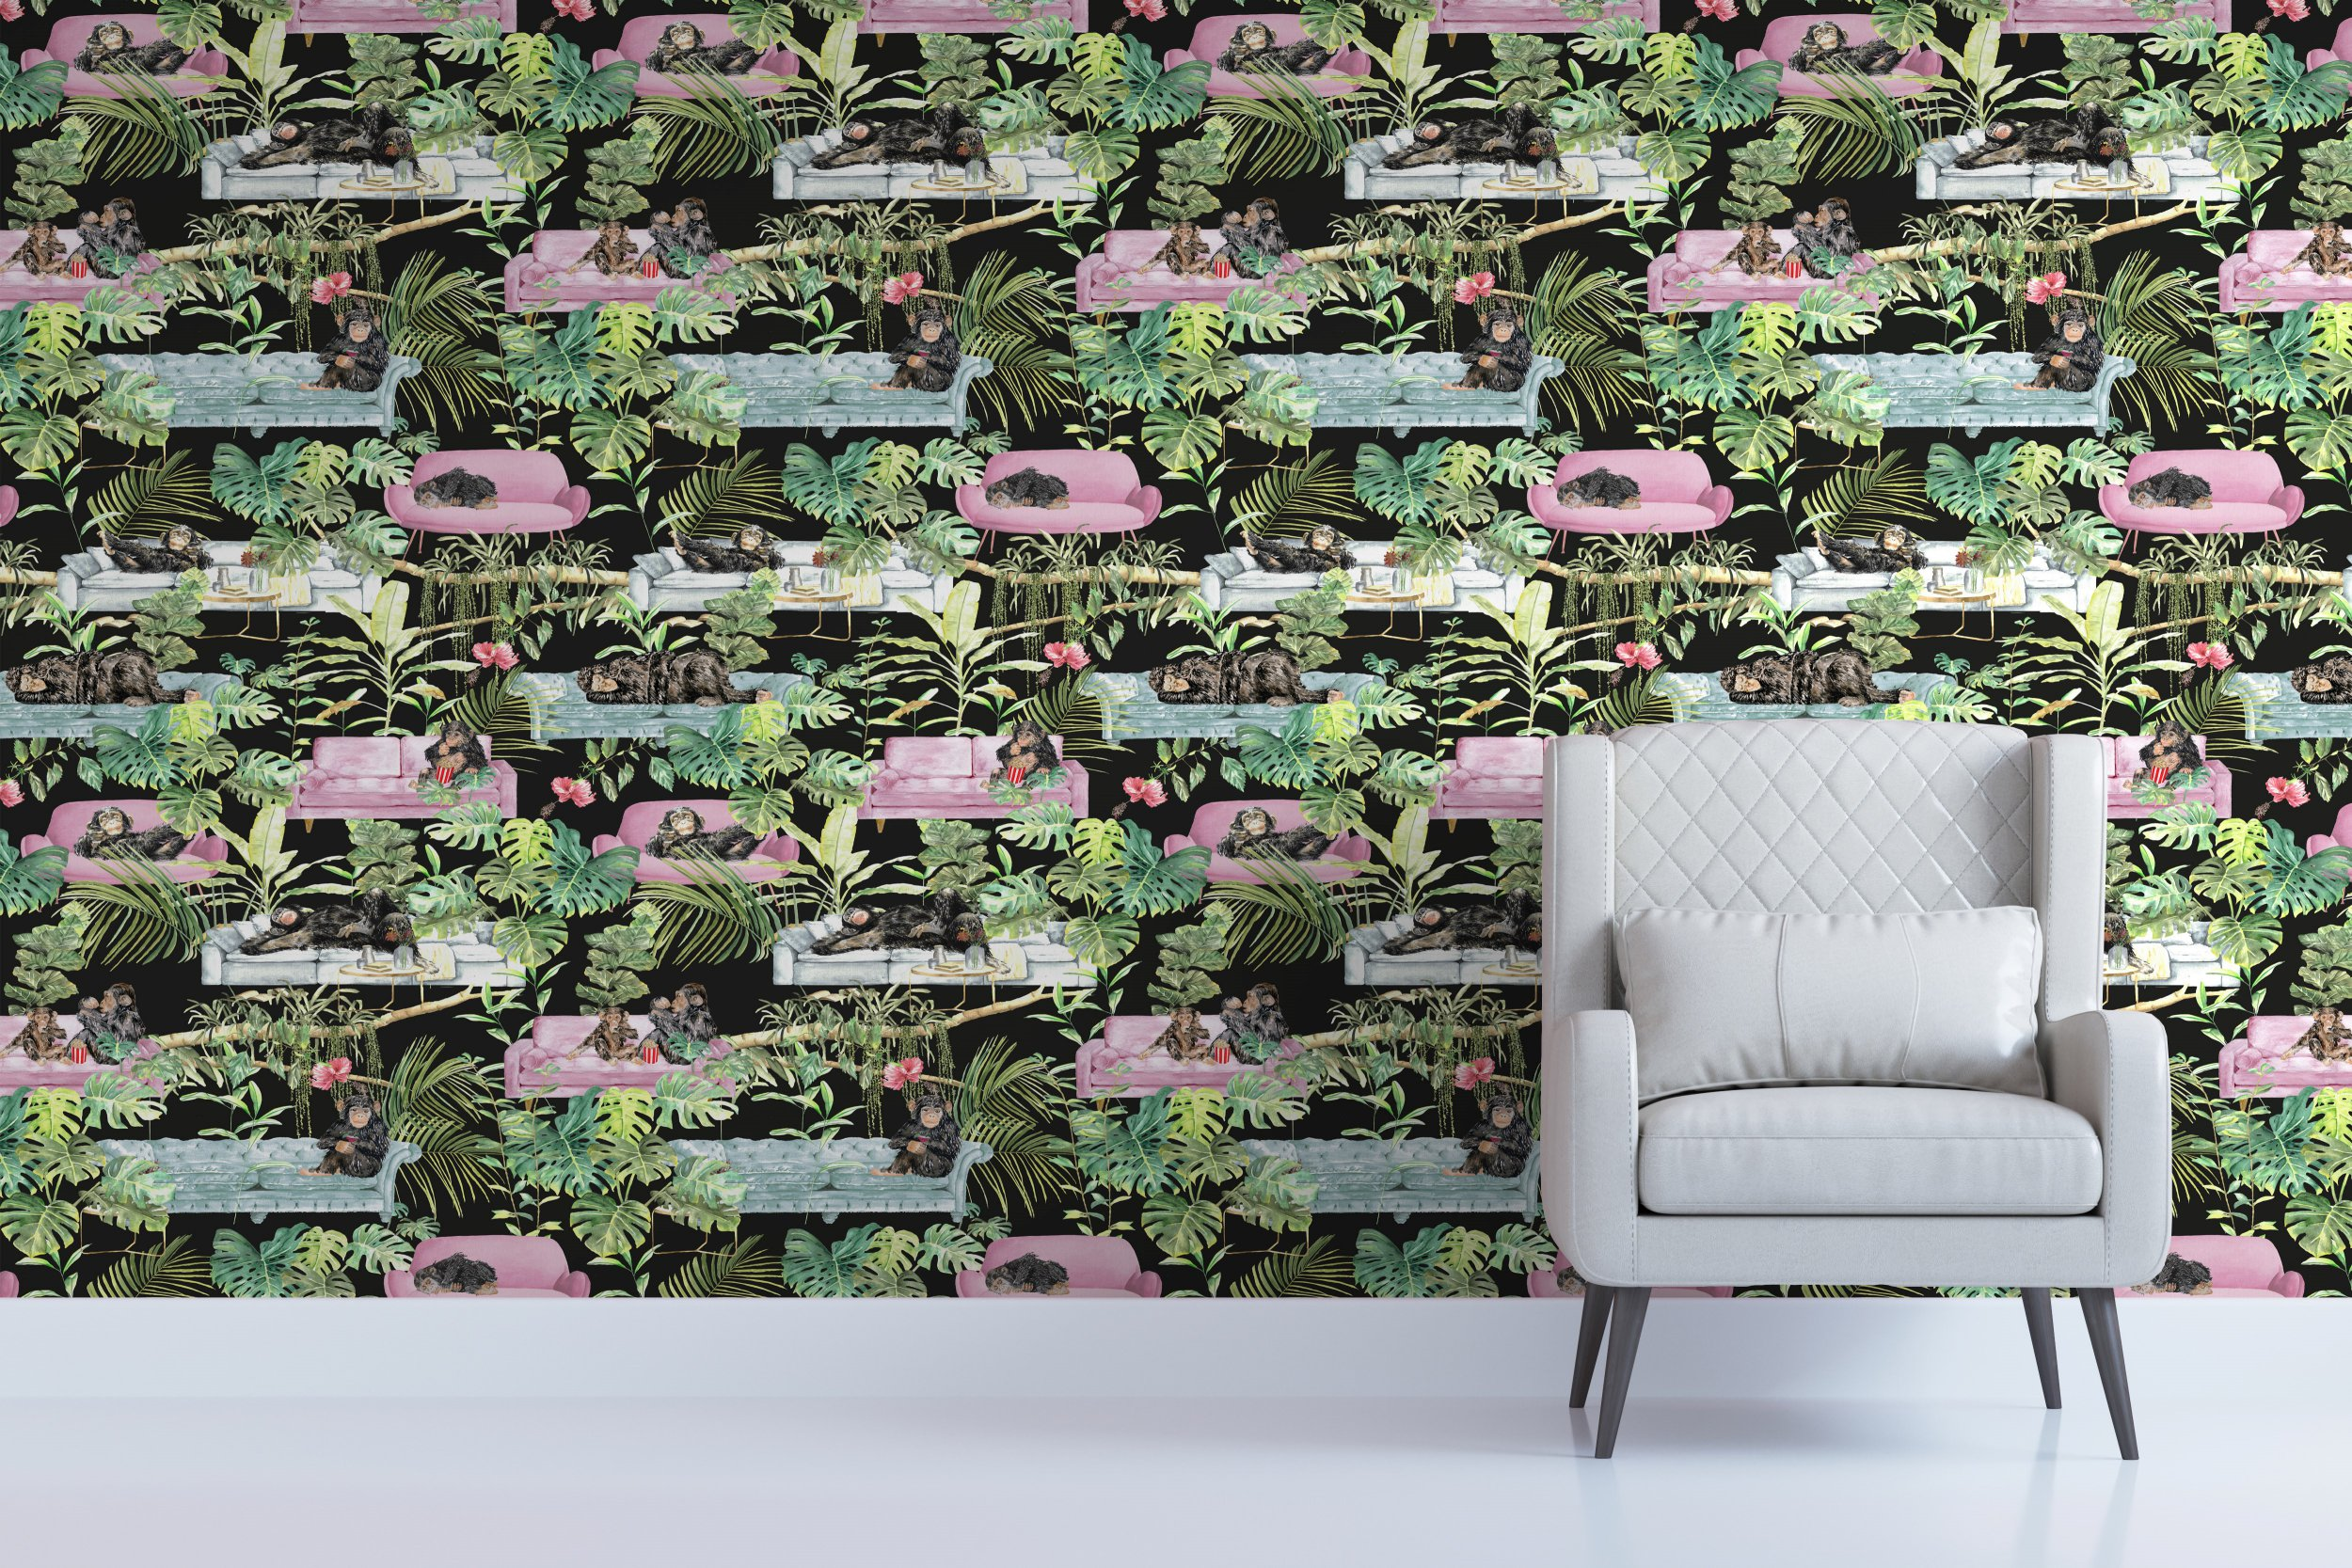 Monkey Business Wallpaper, £125 per roll, Graduate Collection. Buy it with the Ownable app.